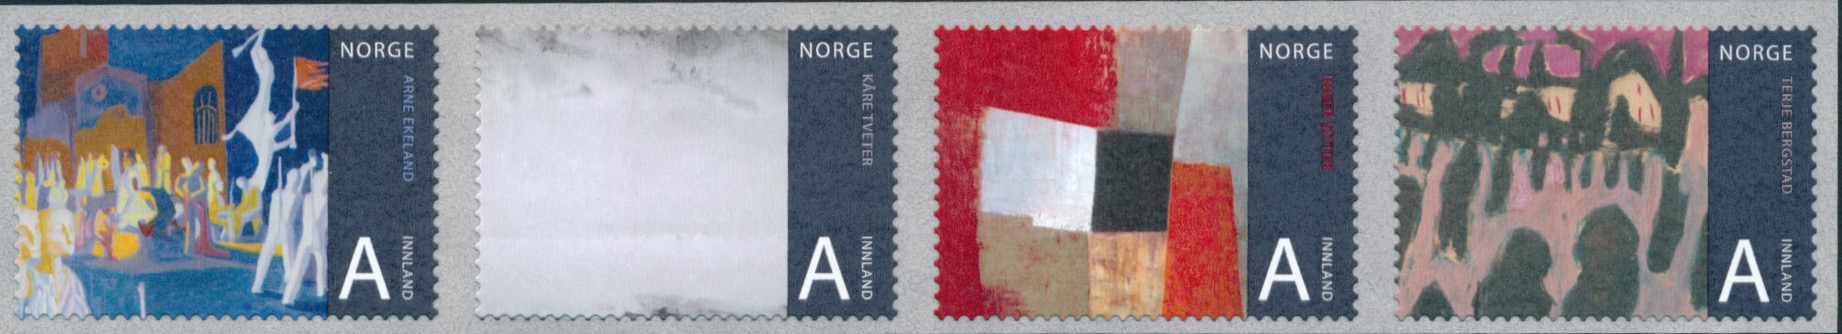 https://www.norstamps.com/content/images/stamps/norway/1700-03.jpeg